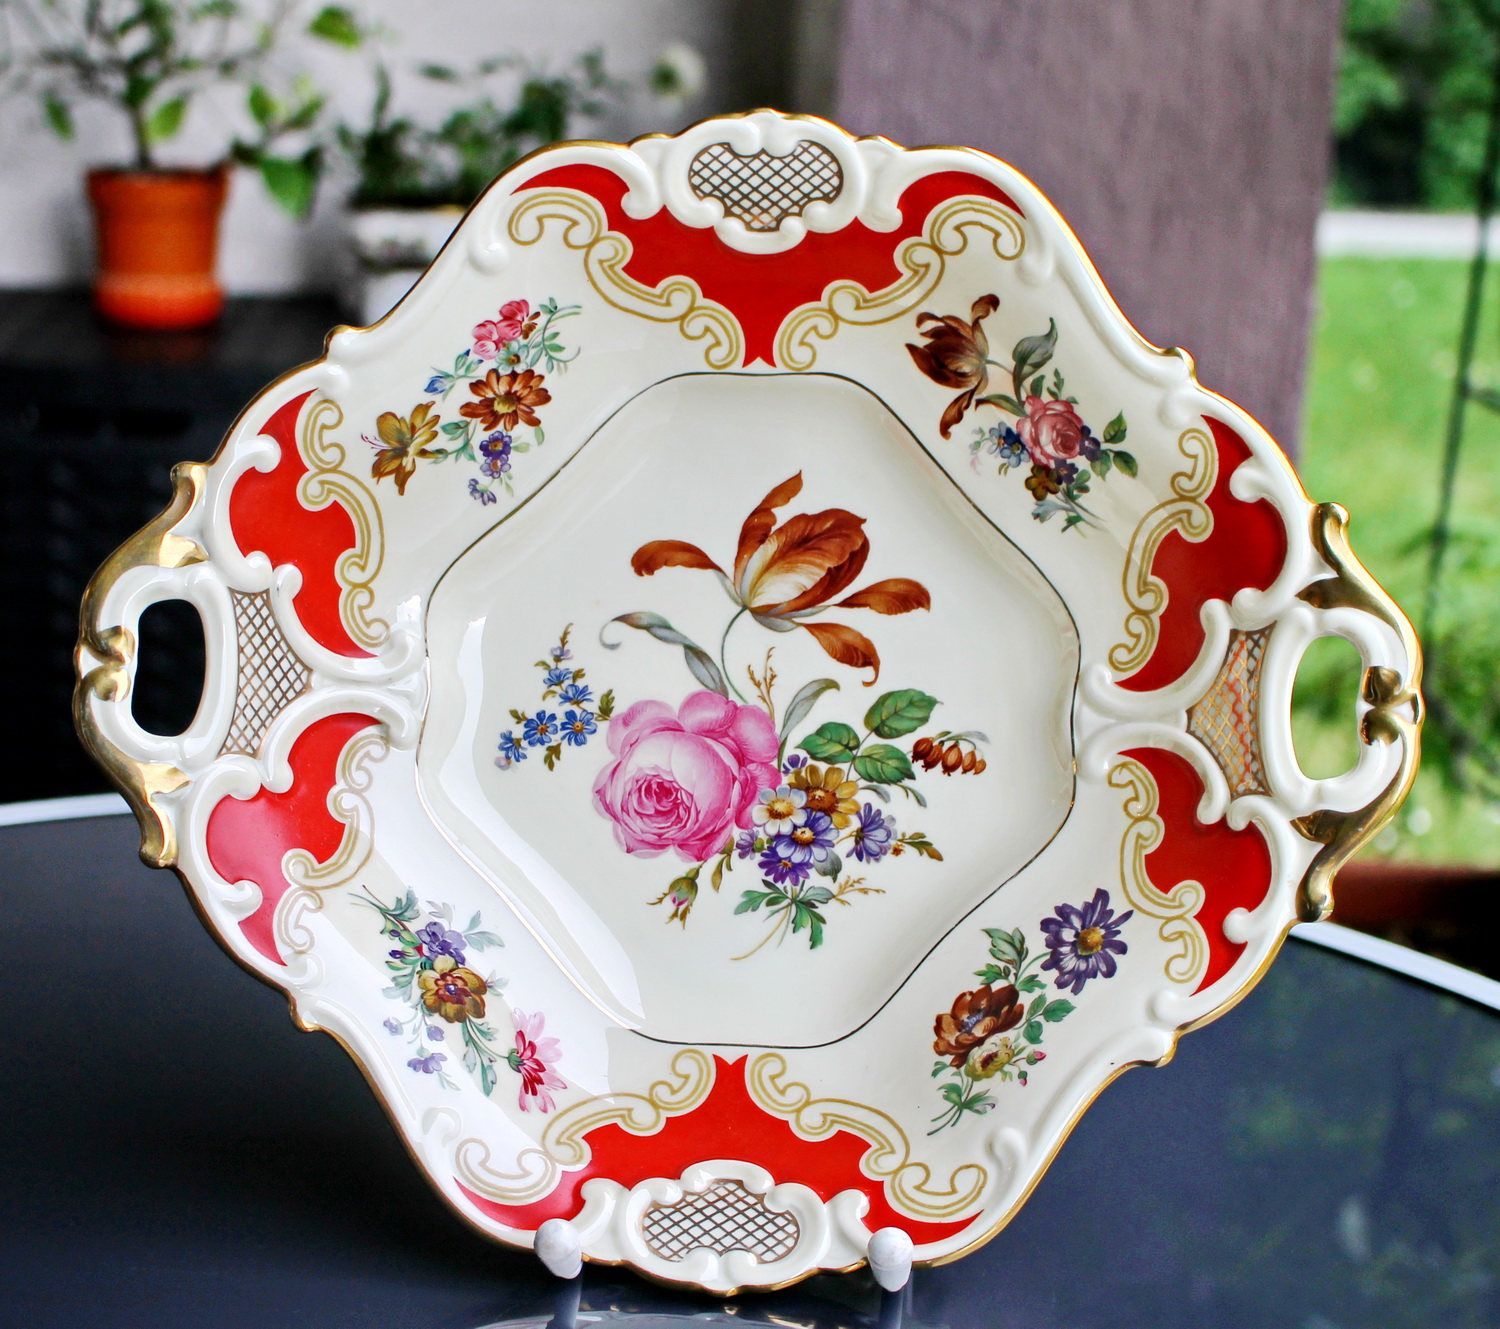 Vintage Platter Bavarian China Serving Dish German Porcelain Serving